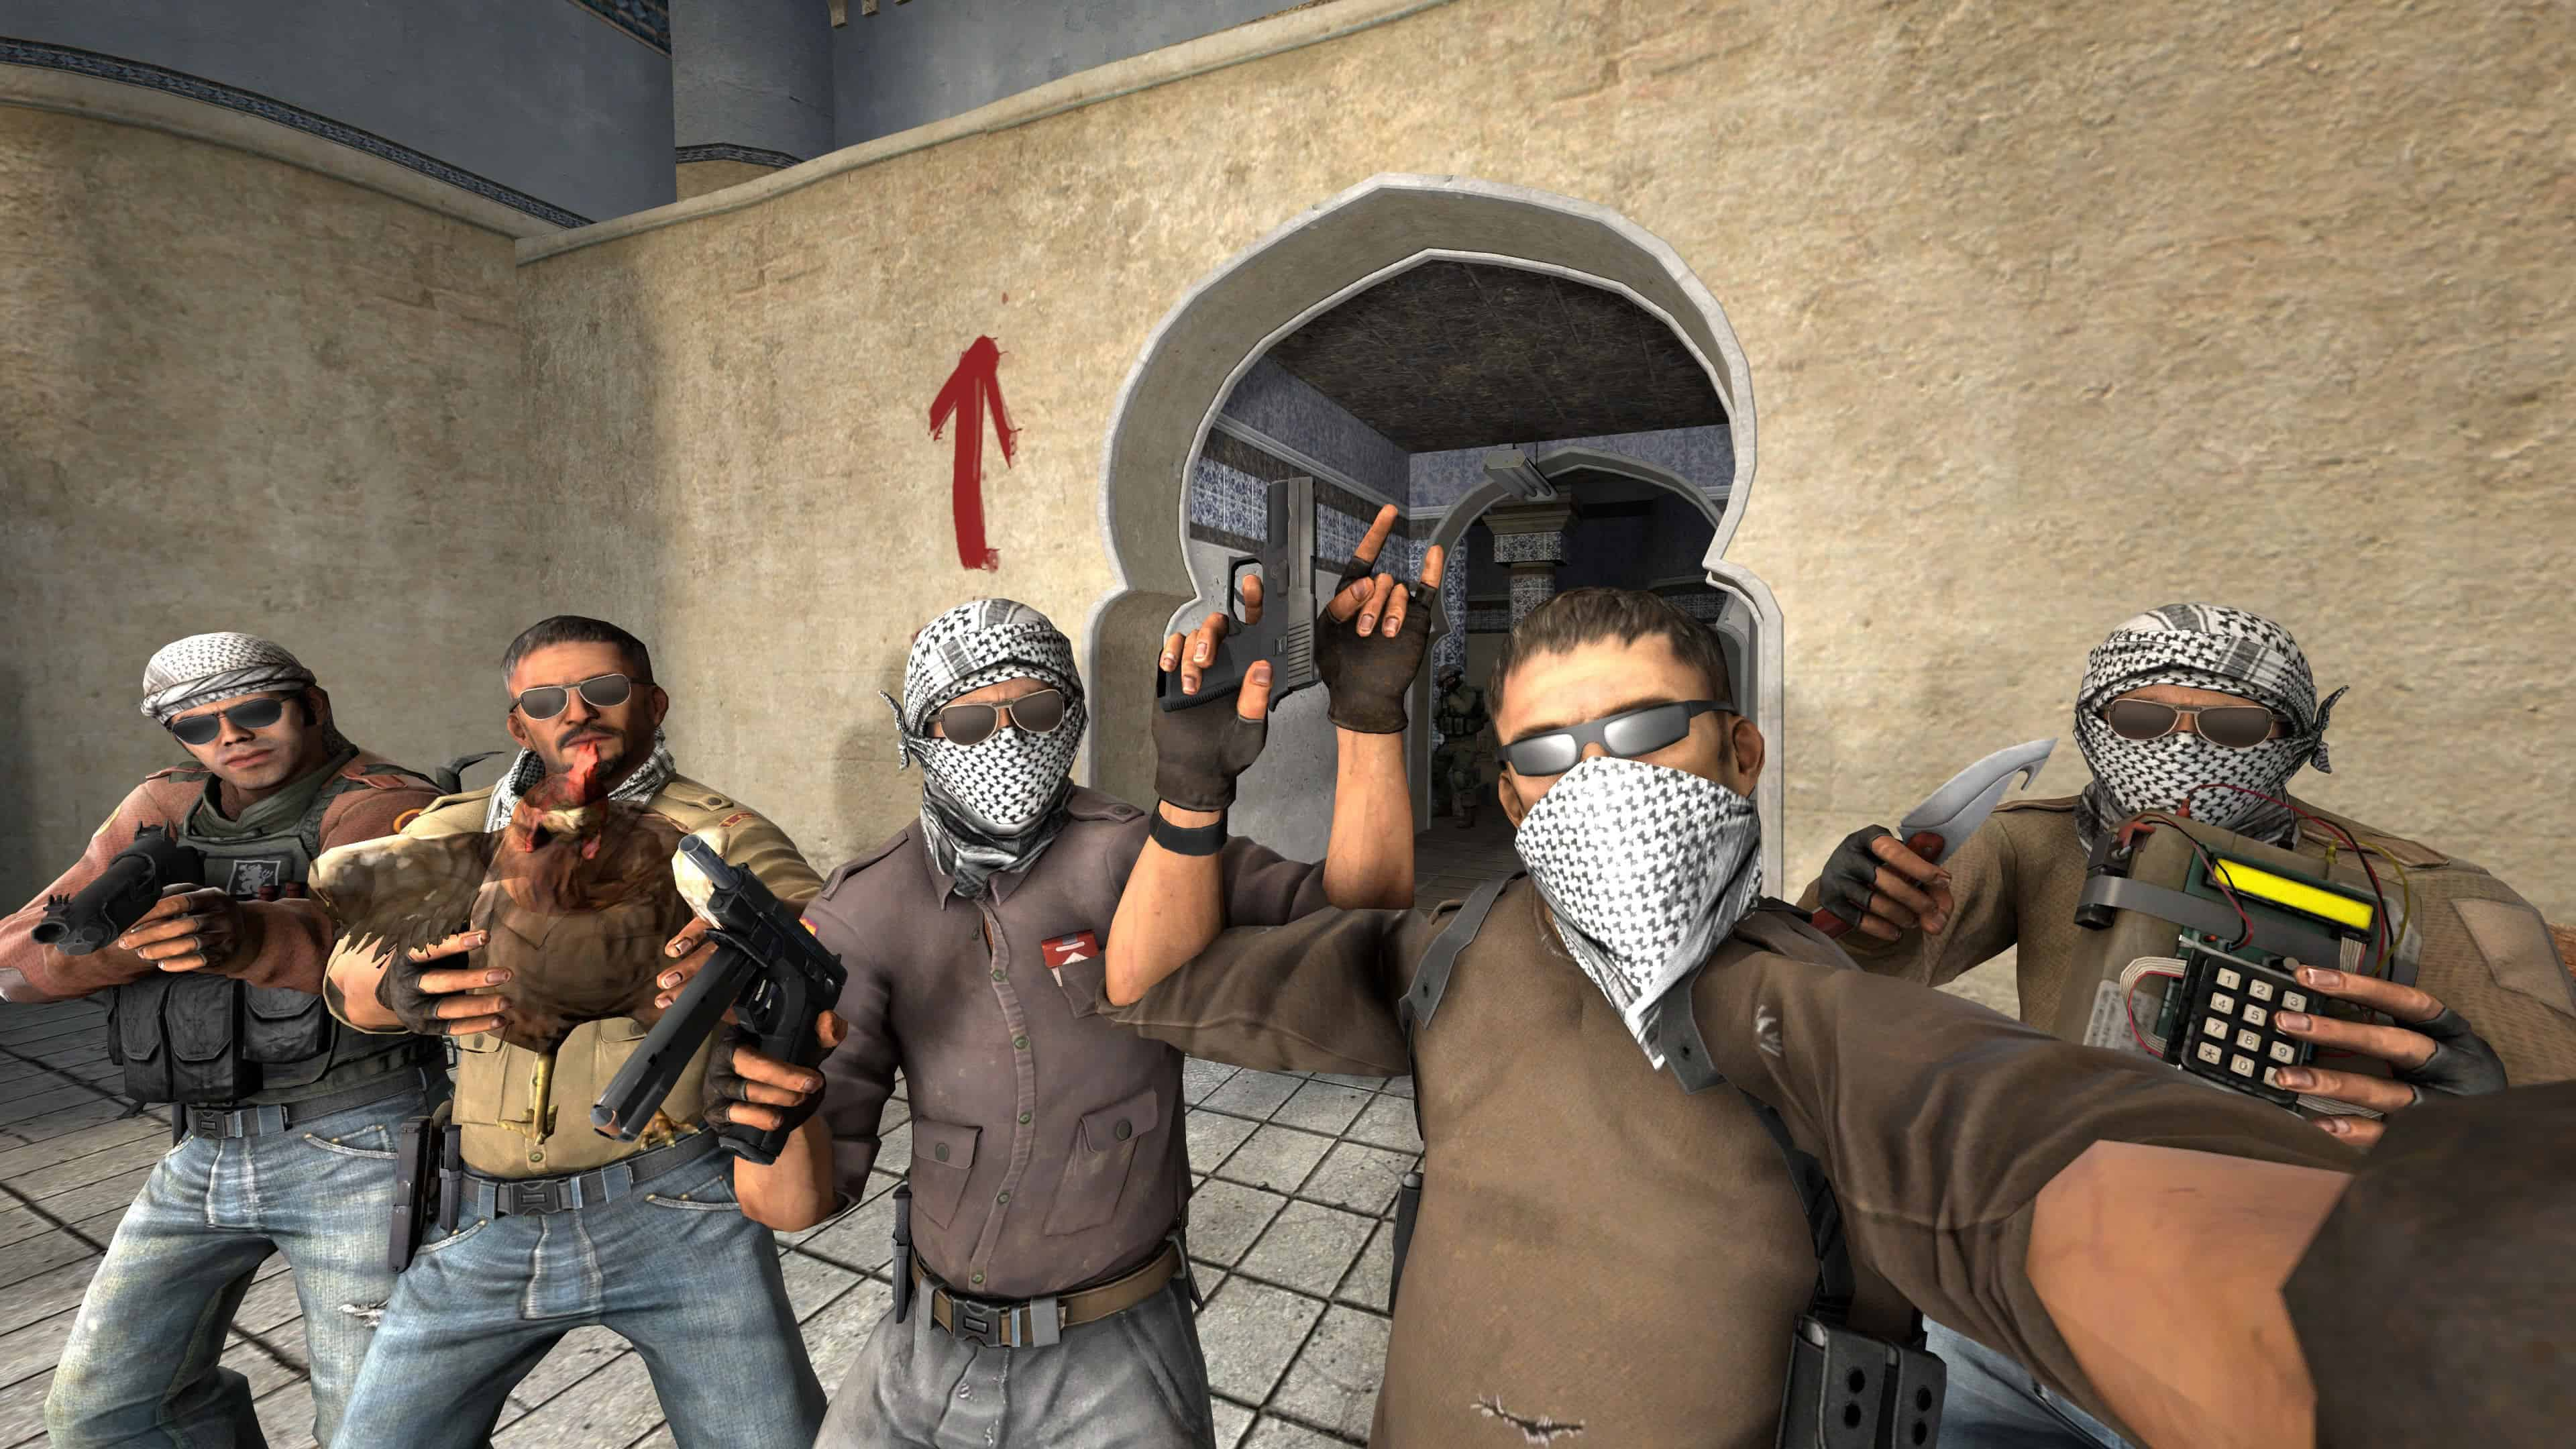 Csgo Counter Strike Global Offensive Selfie Uhd 4k